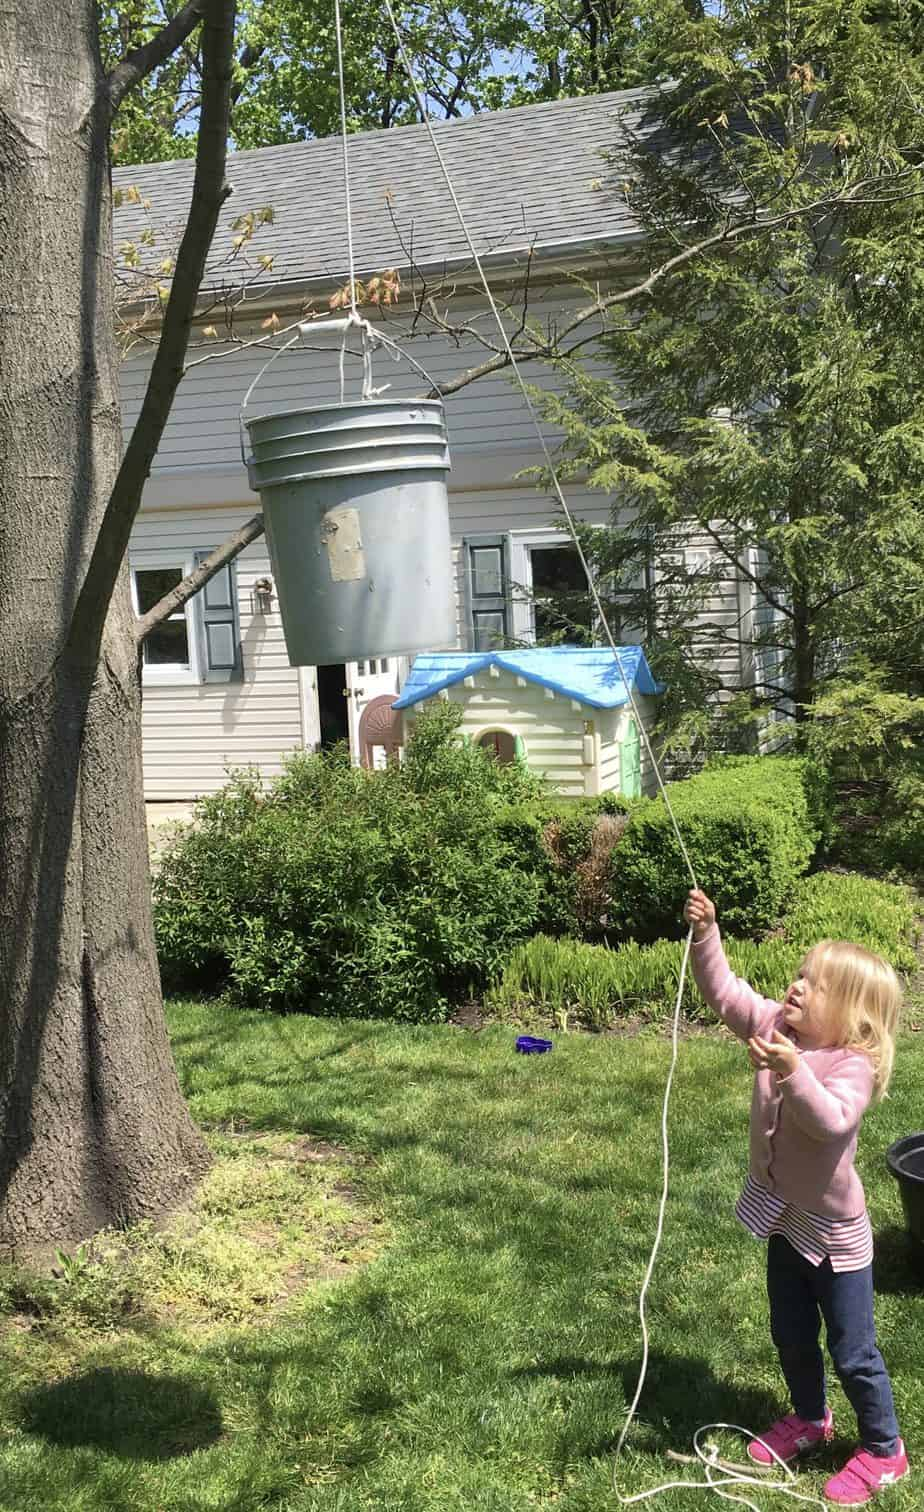 Girl using a pulley to raise a bucket by pulling a rope that is around a branch of a tree showing an example of an outdoor activity for kids that strengthens hands.